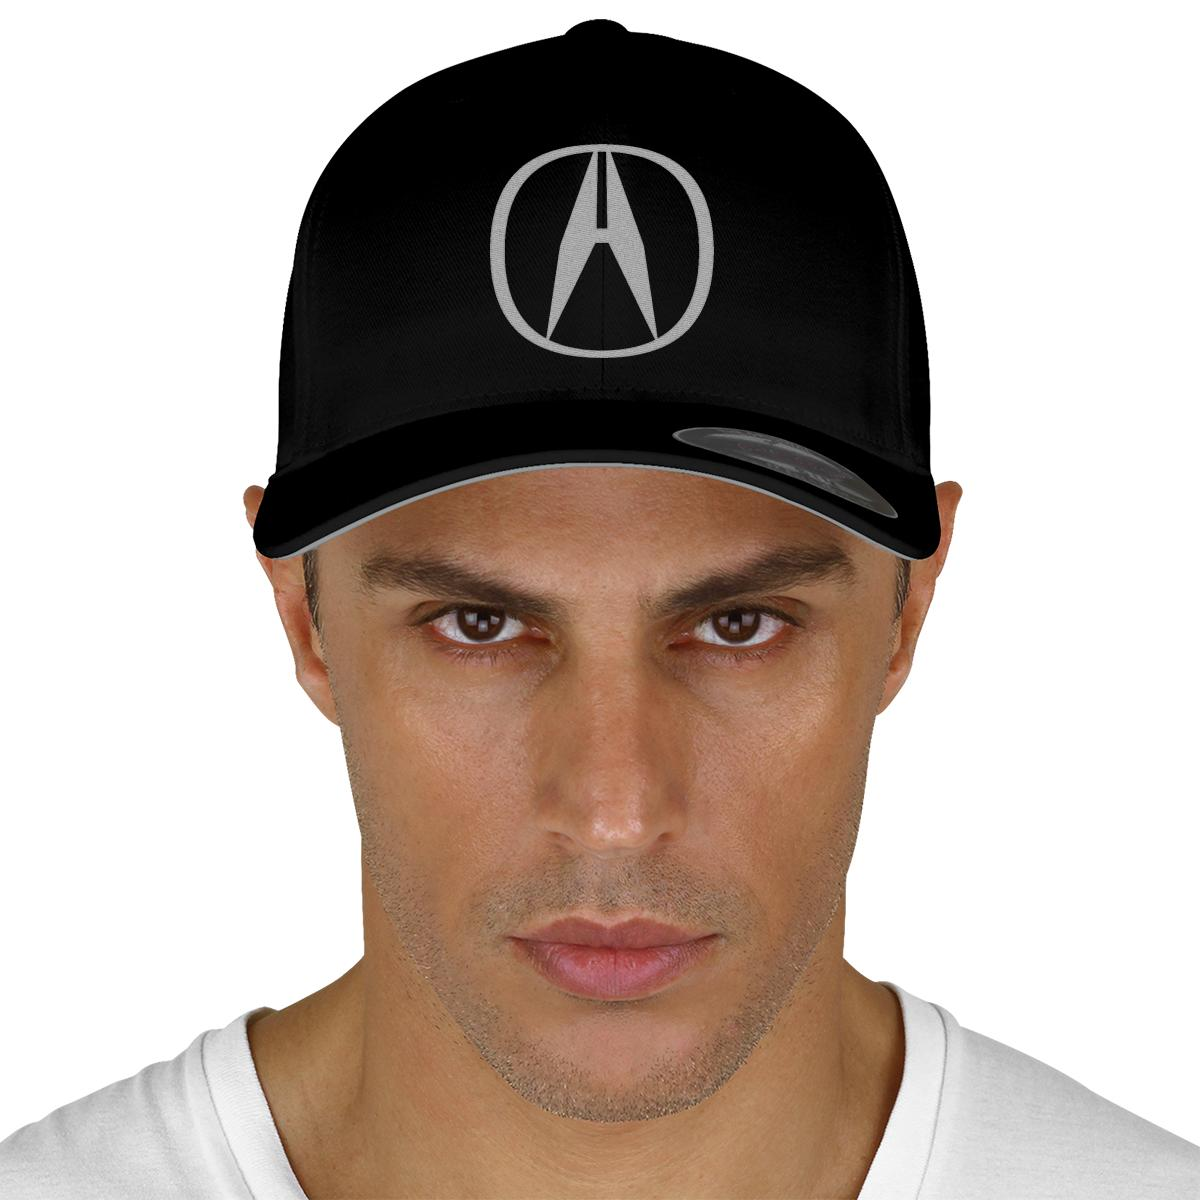 Acura Symbol Baseball Cap Embroidered Customoncom - Acura hat